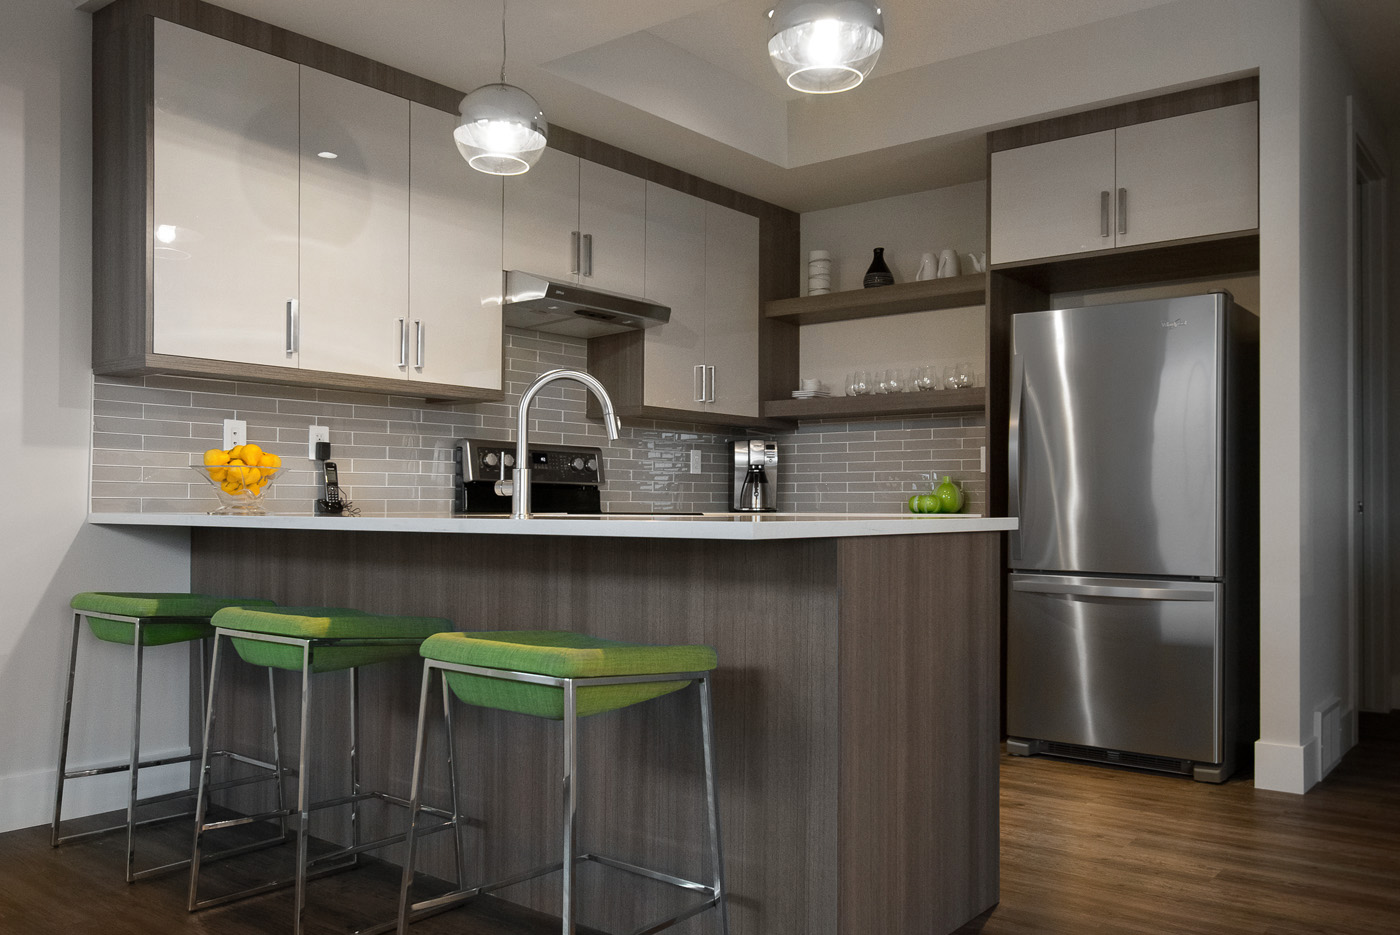 Viga Series Kitchen Cabinets By Superior Cabinets